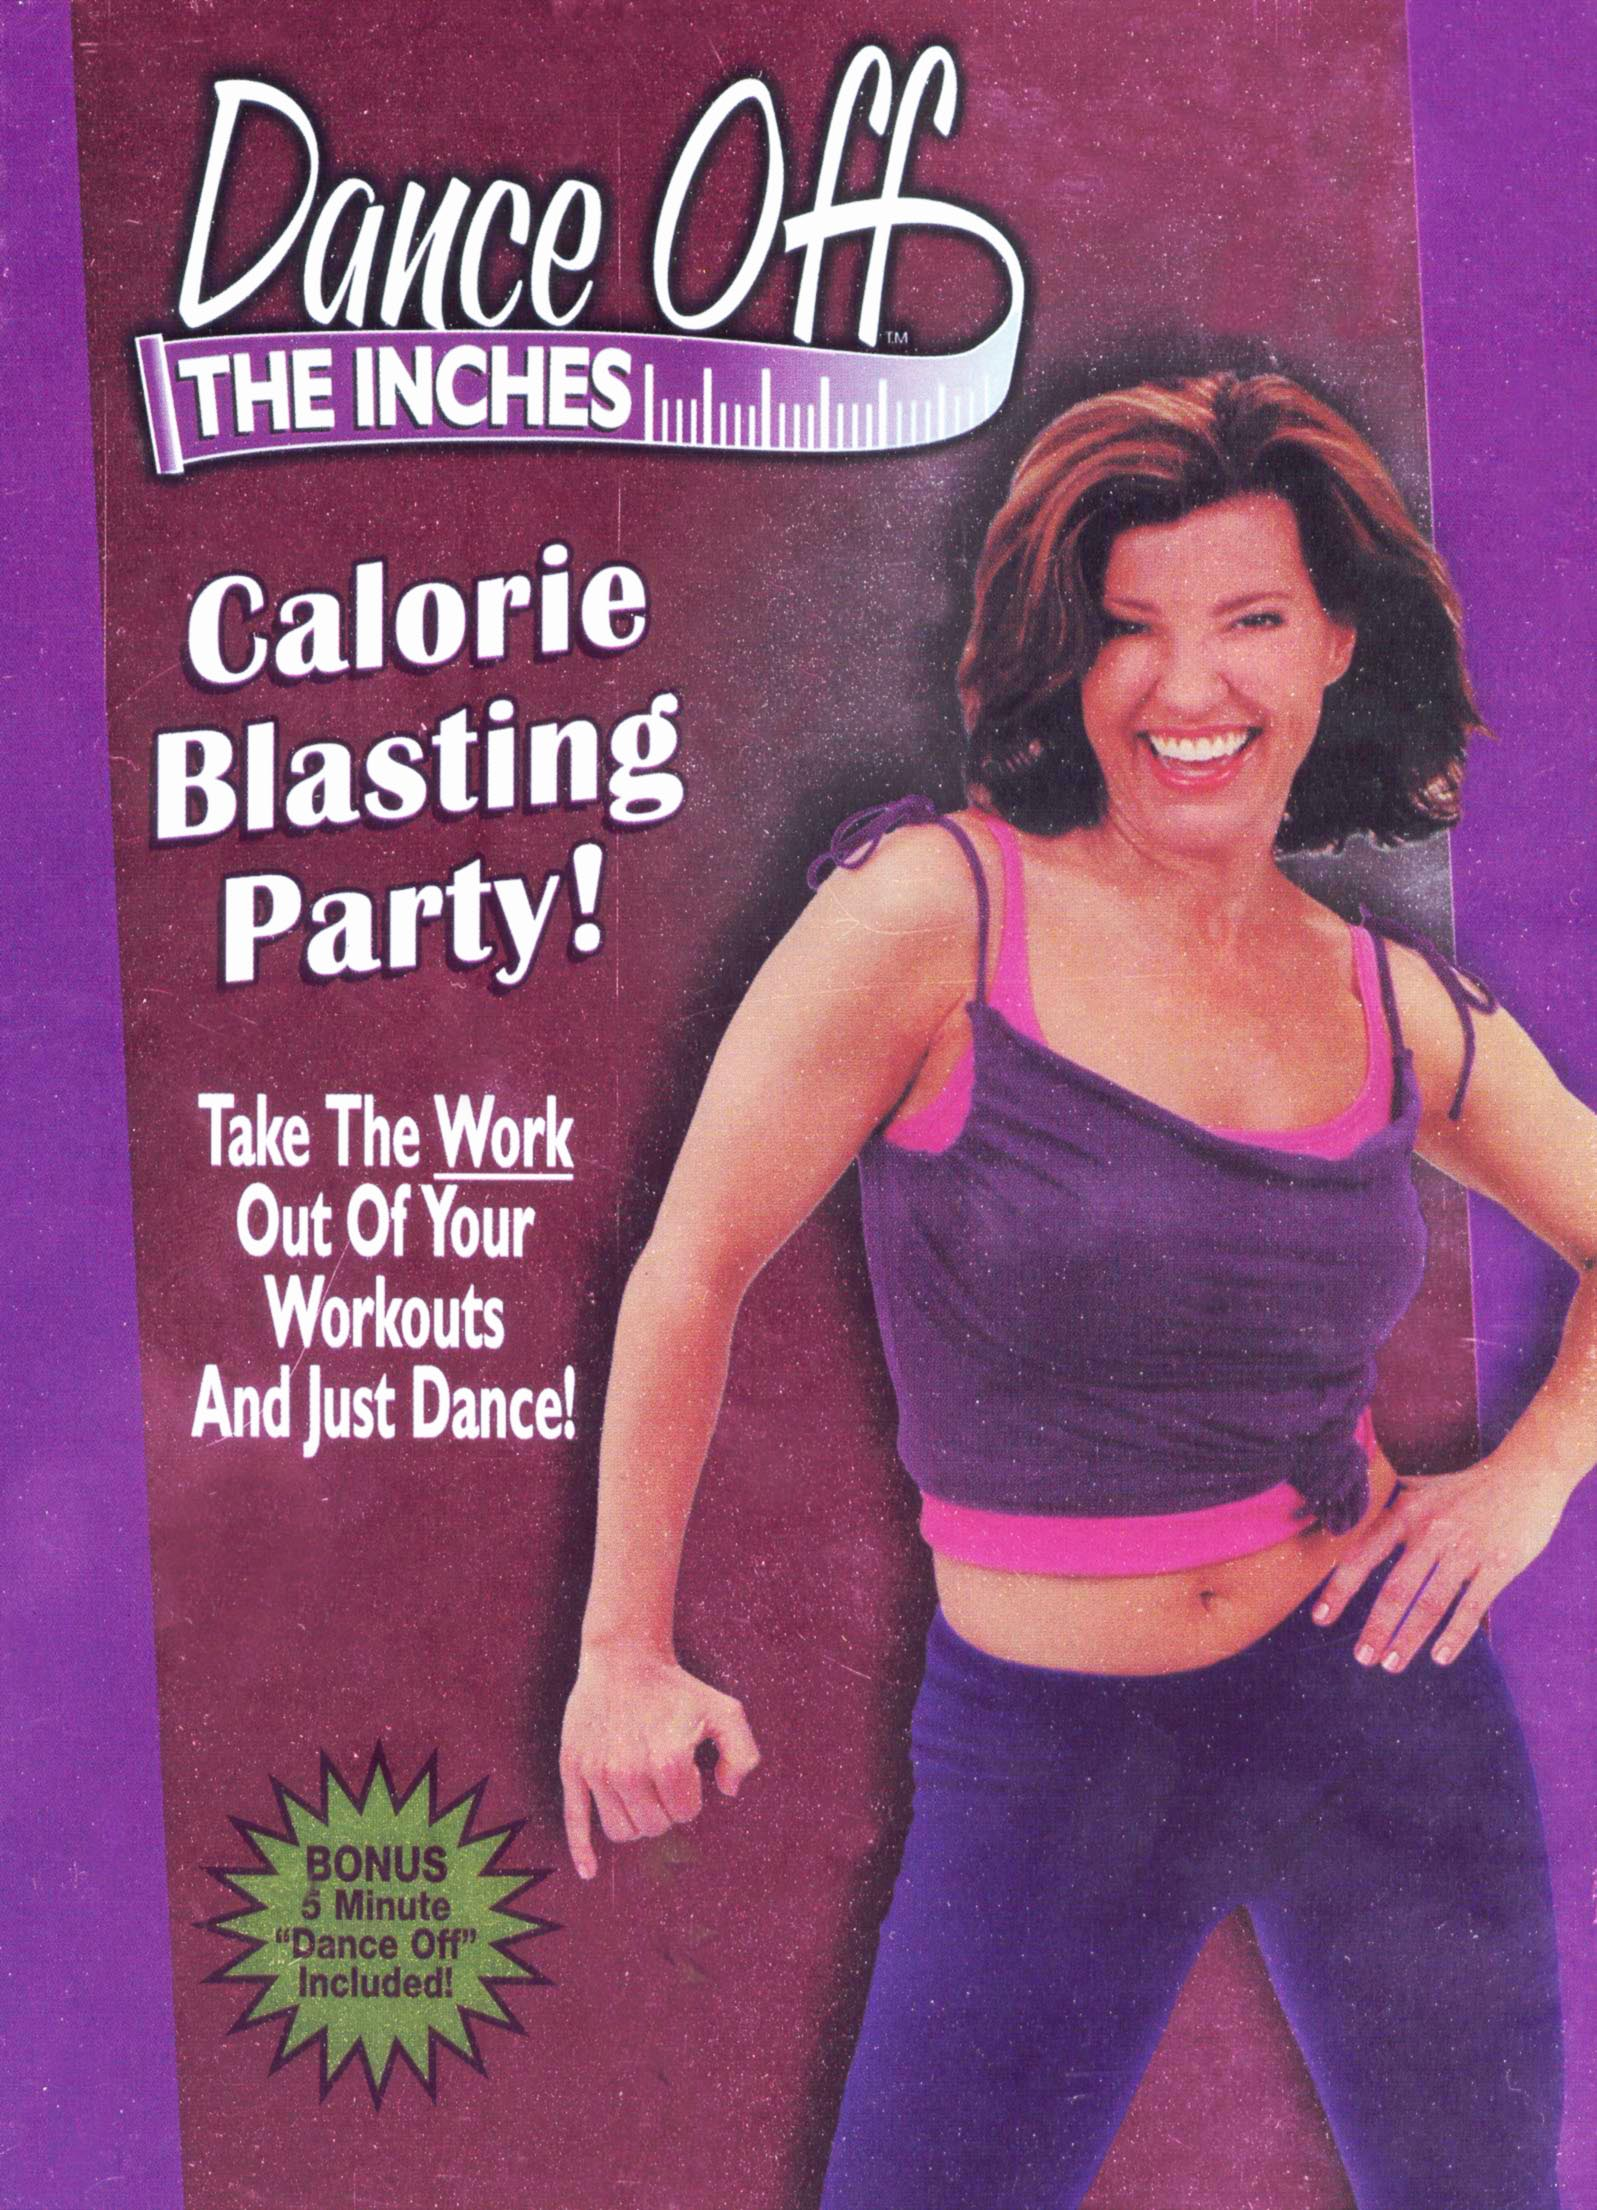 Dance Off the Inches: Calorie Blasting Party